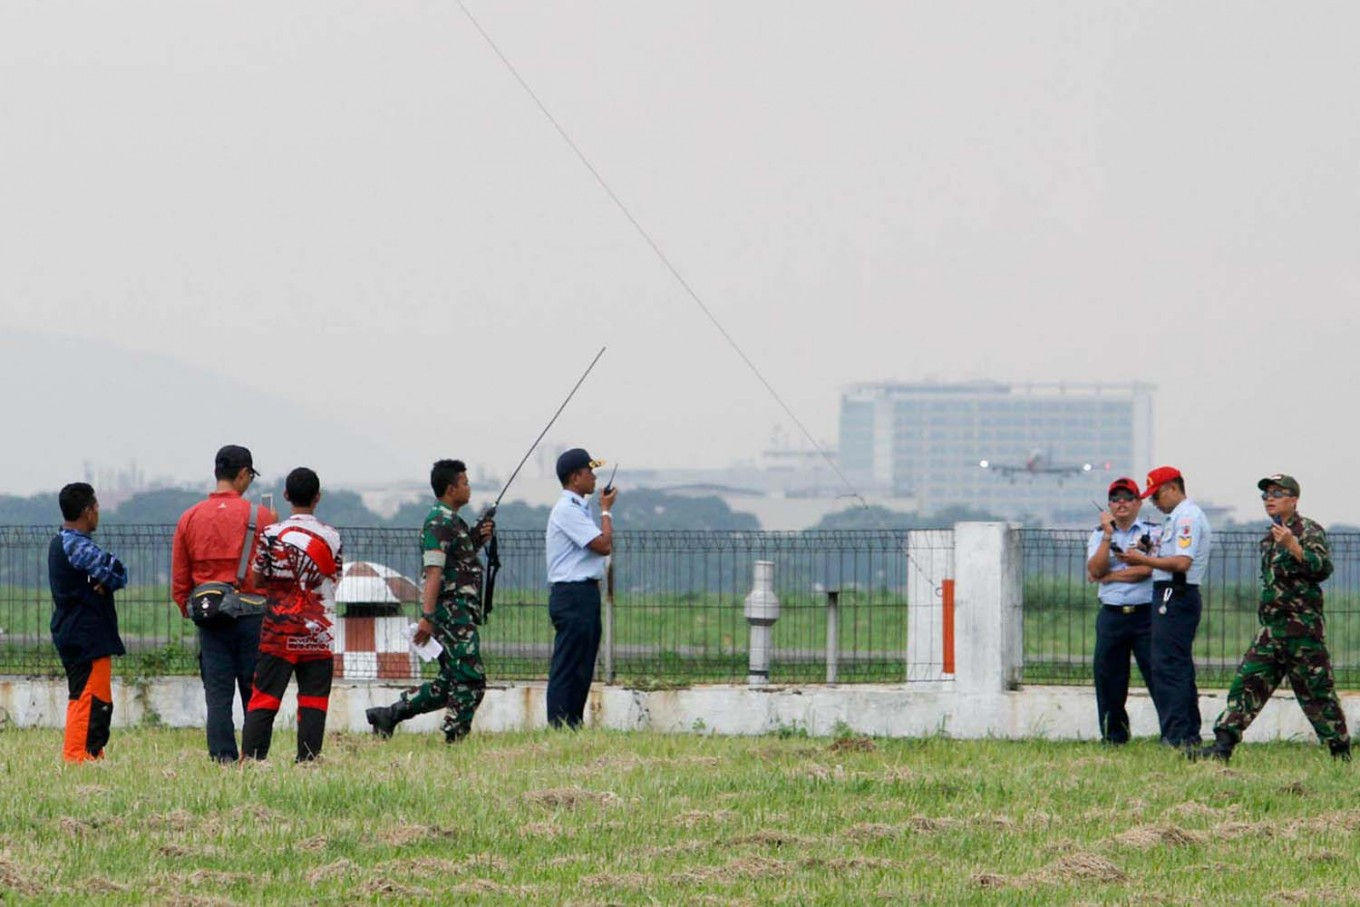 Some Air Force officers communicate with the ATC (Air Traffic Control) to assure the show is safe. JP/Arya Dipa